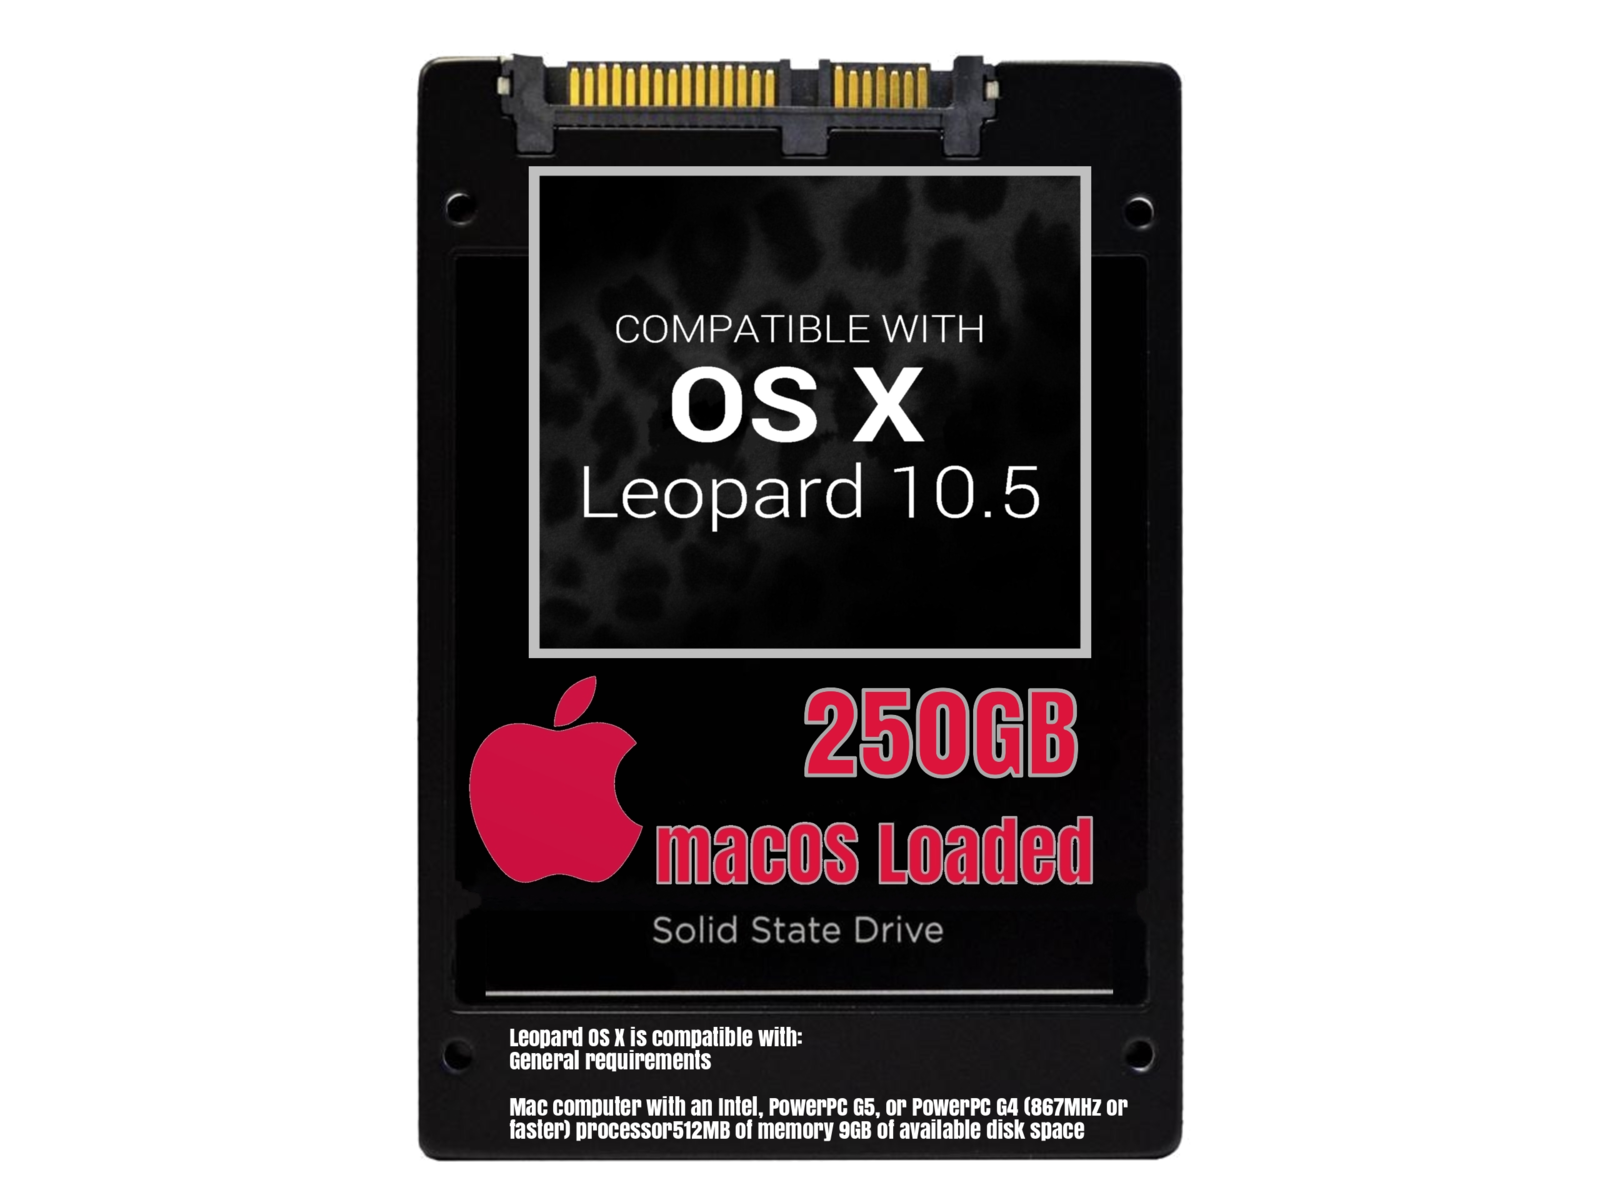 Primary image for macOS Mac OS X 10.5 Leopard Preloaded on 250GB Solid State Drive